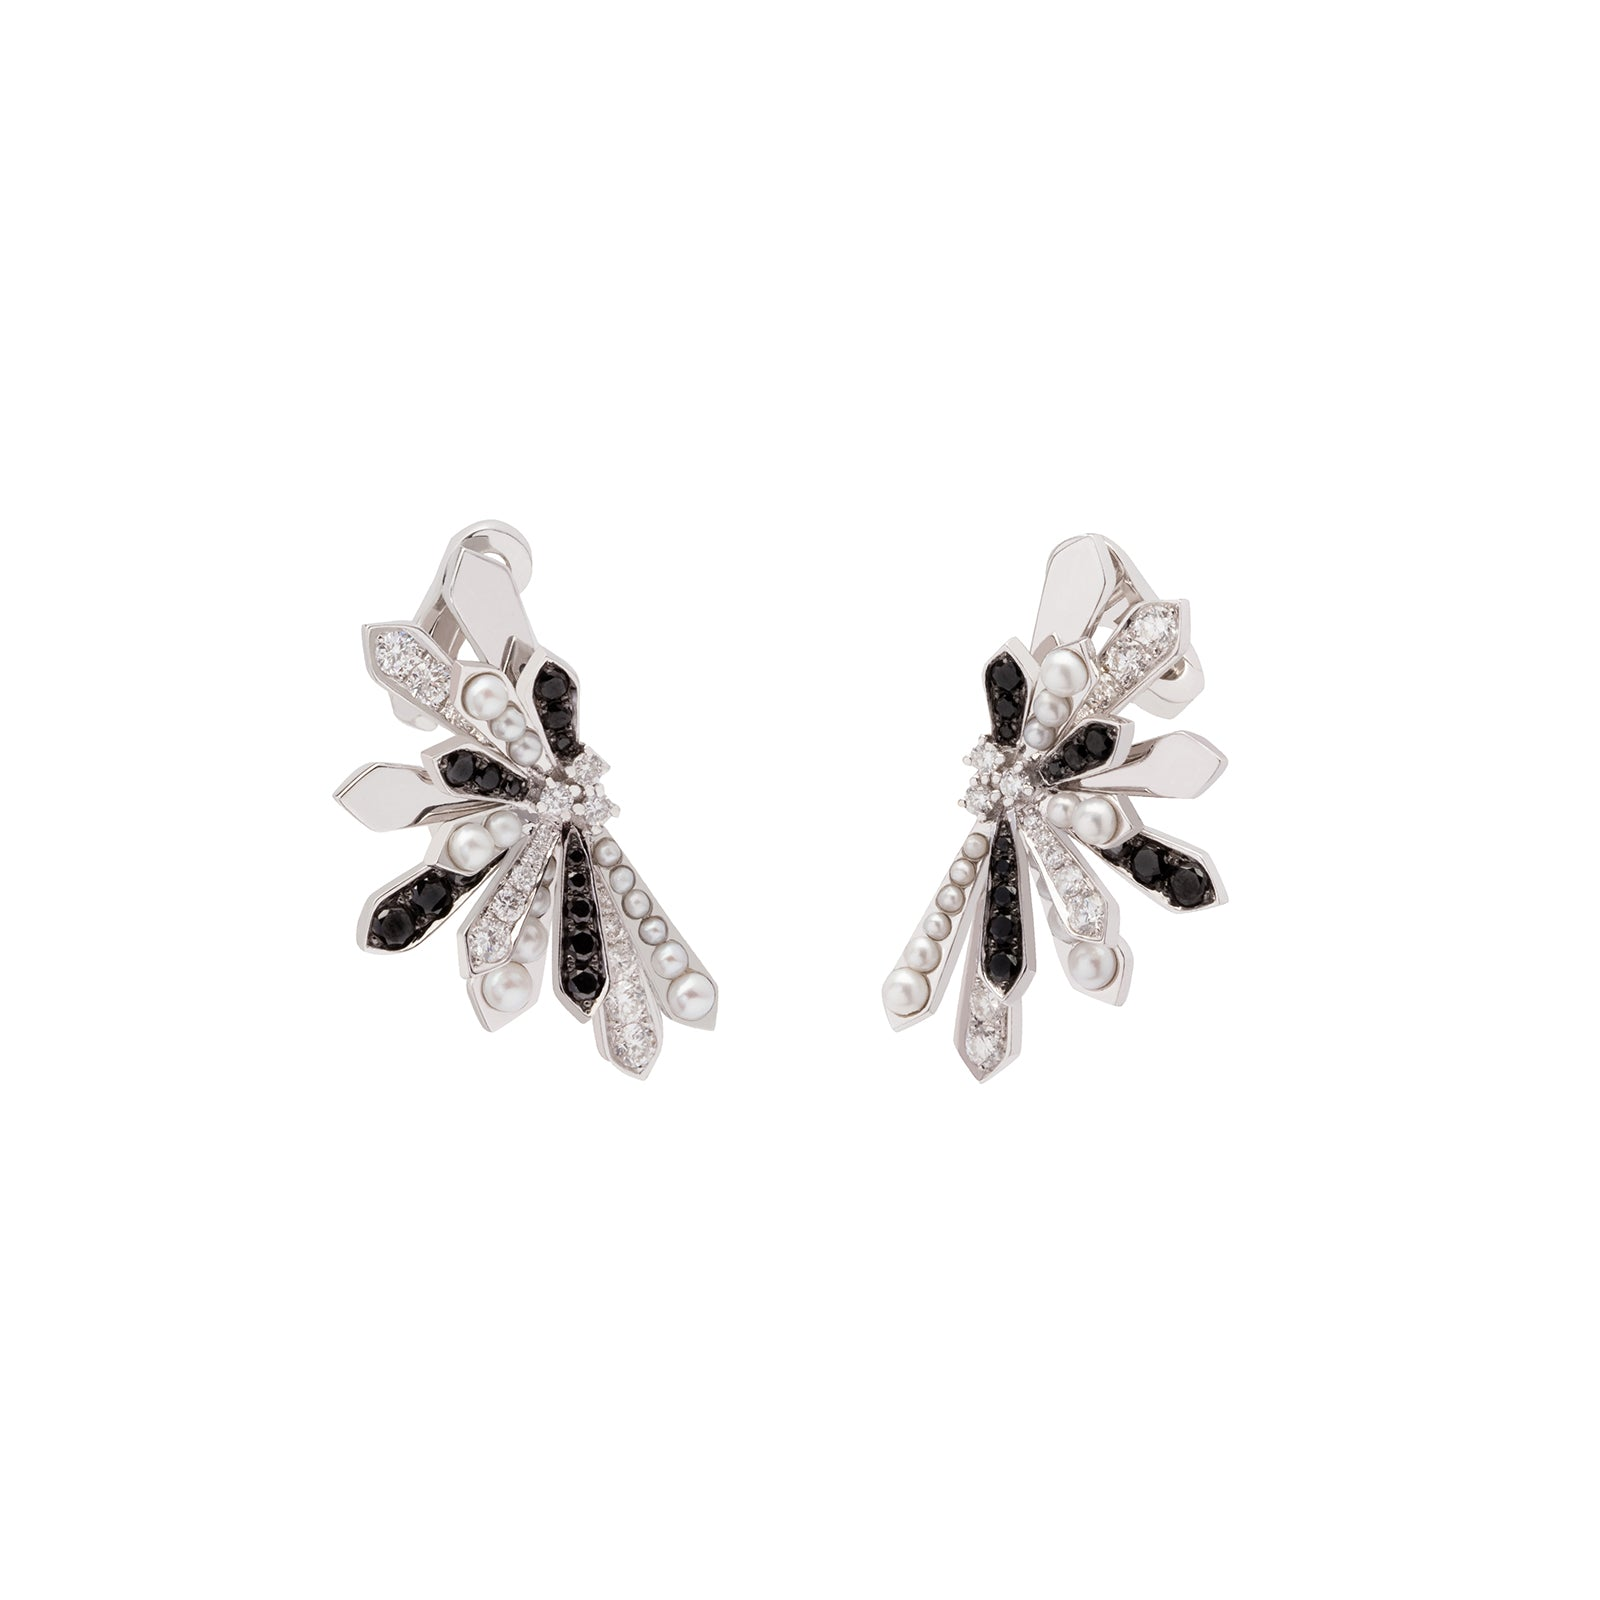 Colette Penacho Pearl Earrings - Earrings - Broken English Jewelry